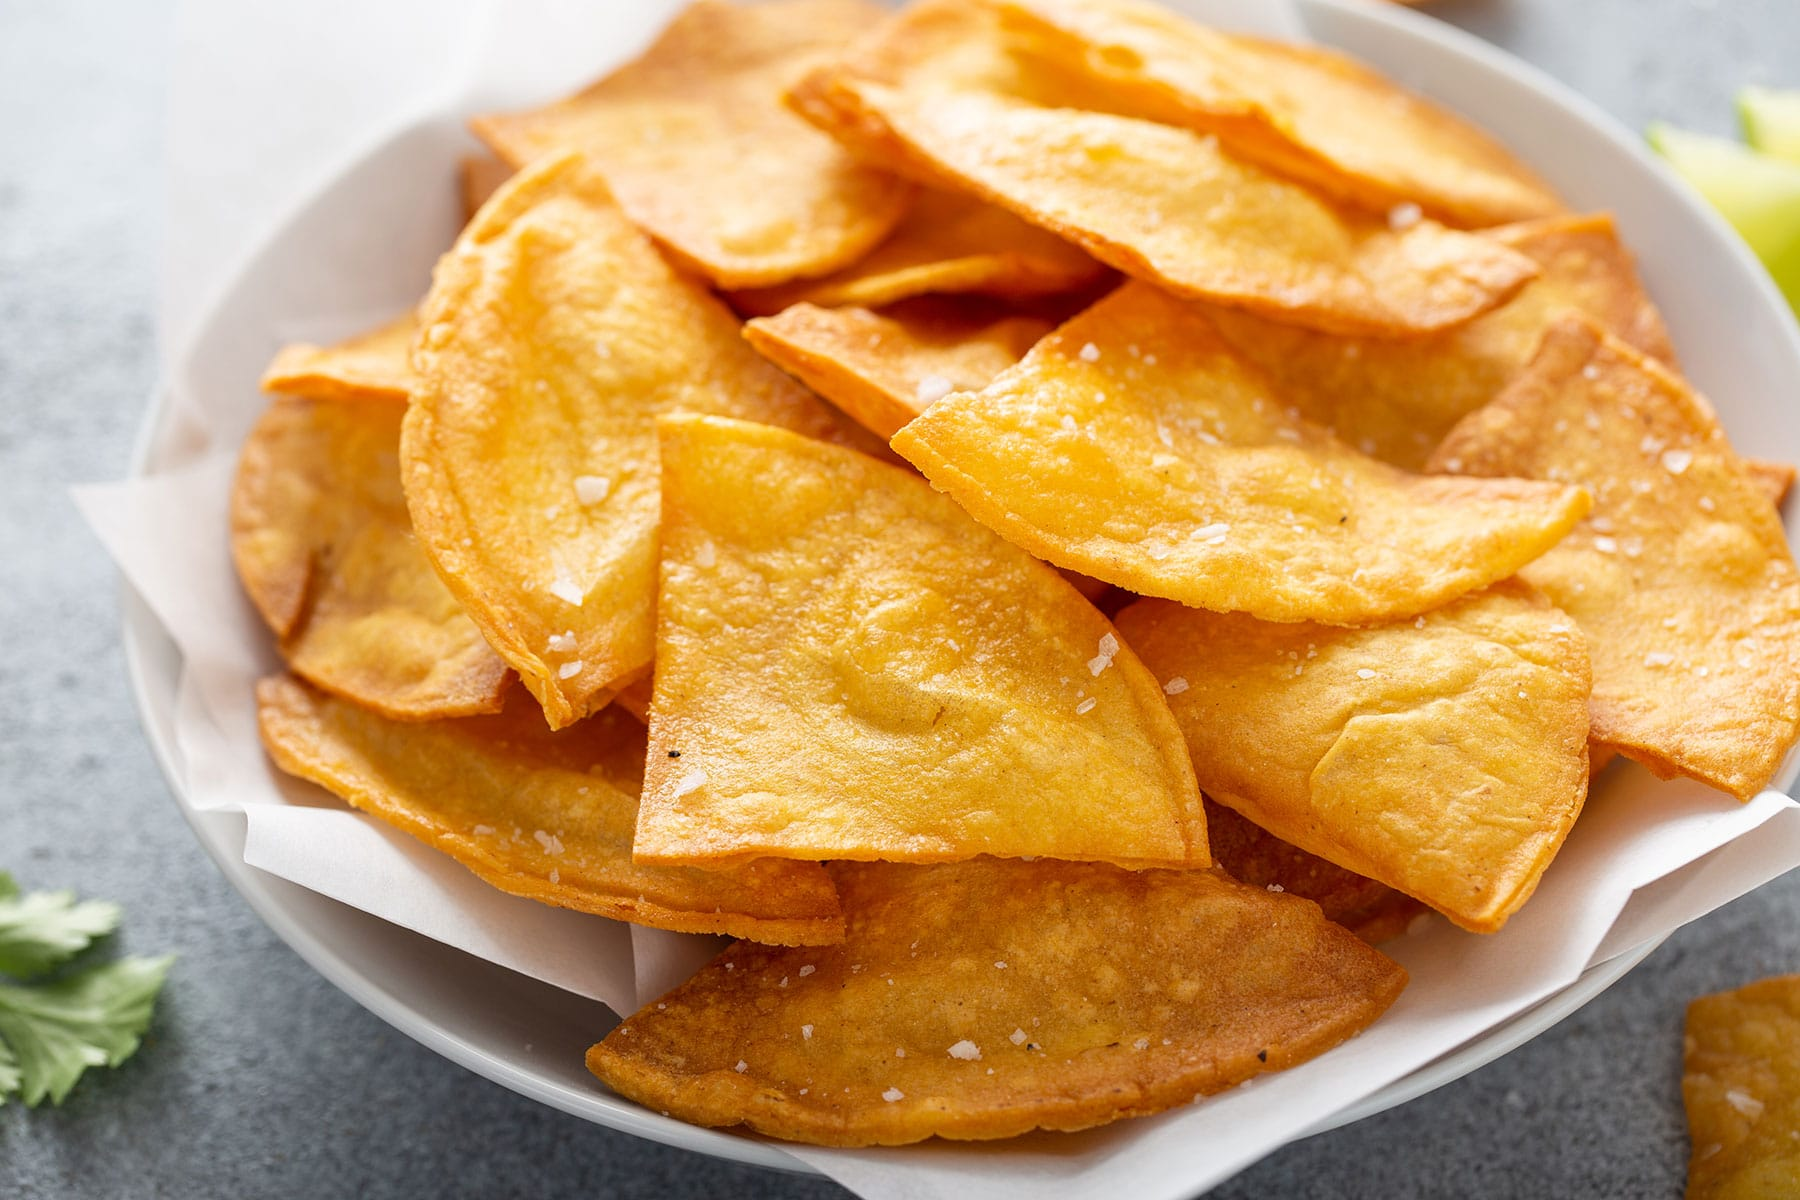 Freshly made tortilla chips in a bowl.